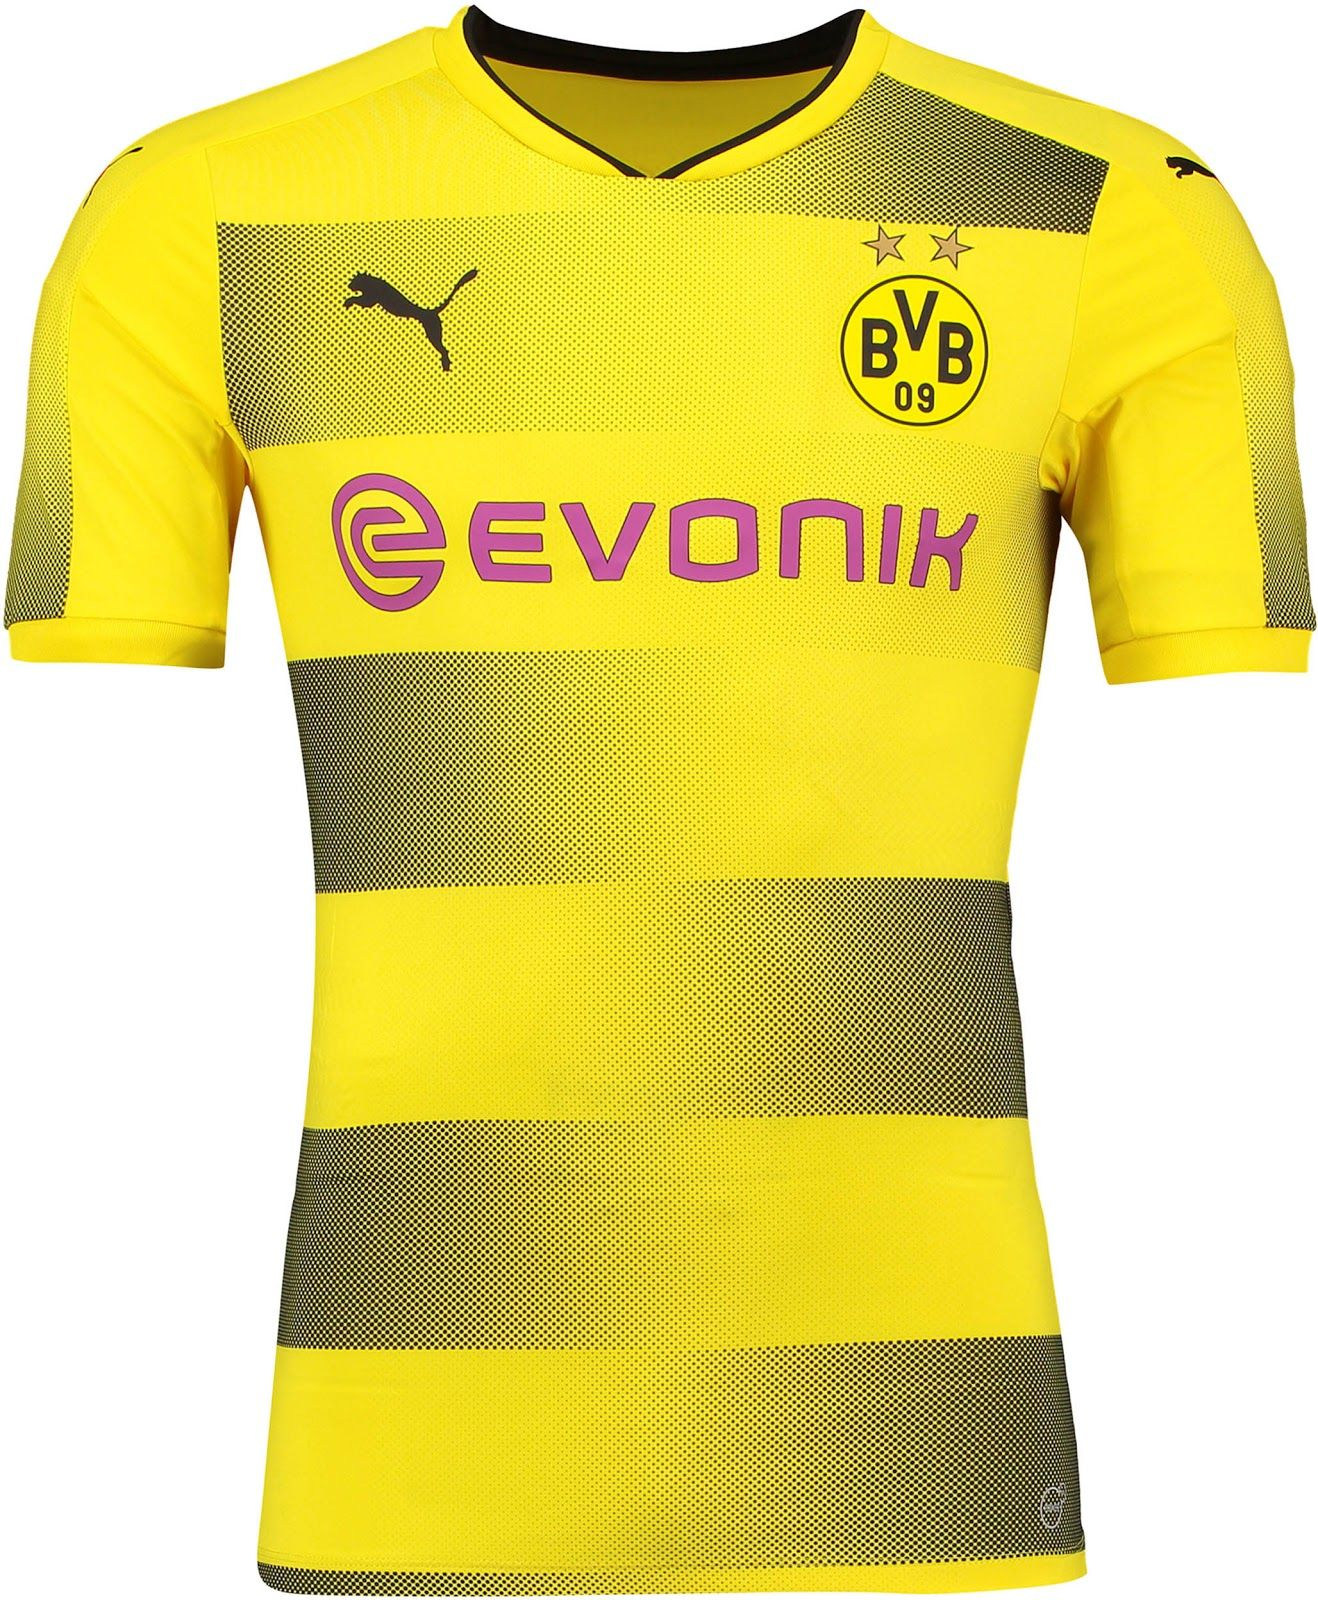 The Borussia Dortmund 2017-18 jersey features an outstanding hoop graphic. 2651b16de